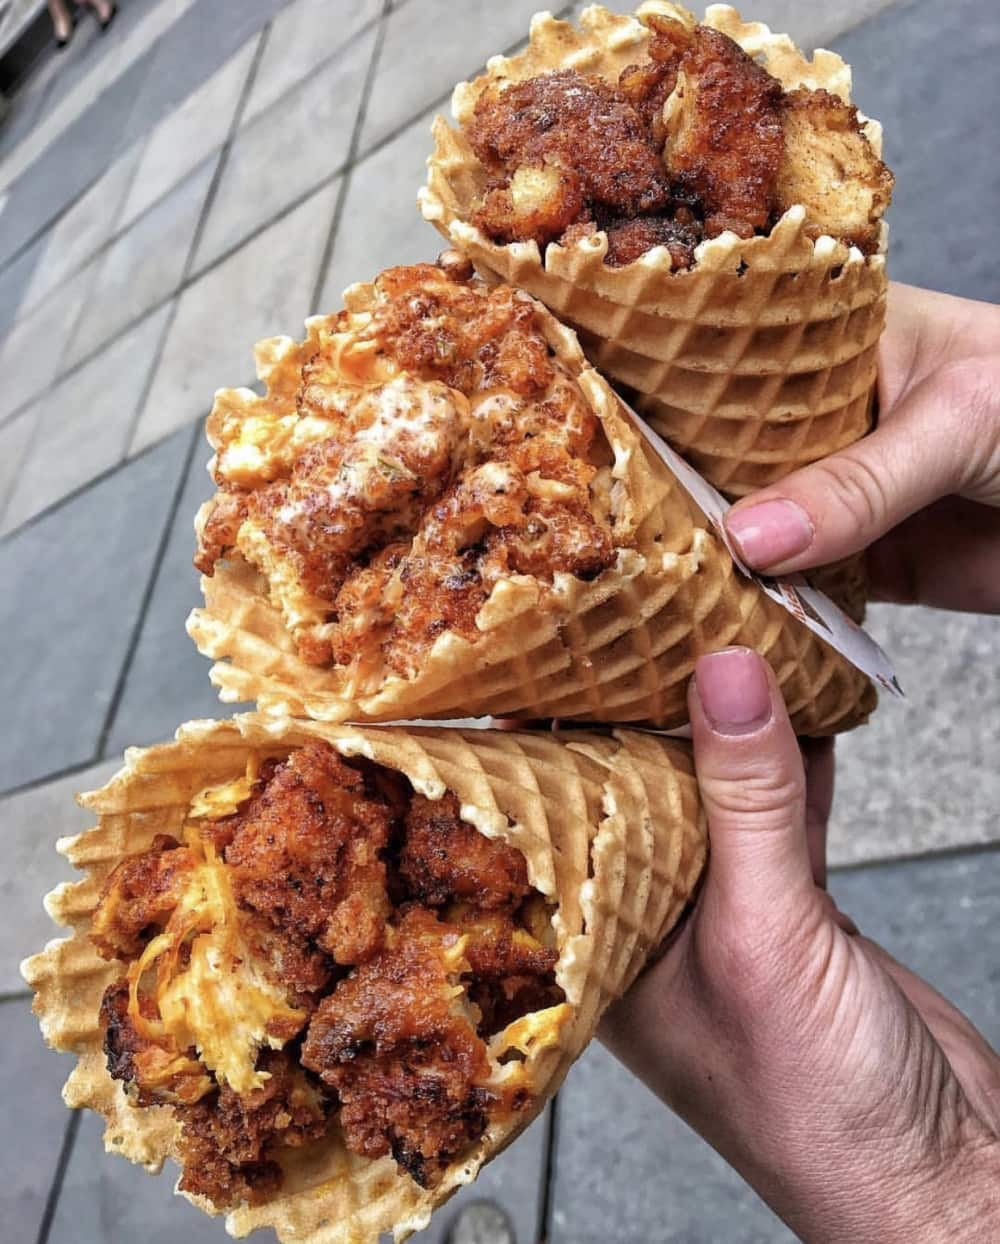 Fork-Free chicken and waffles. Photo courtesy of @DevourPower